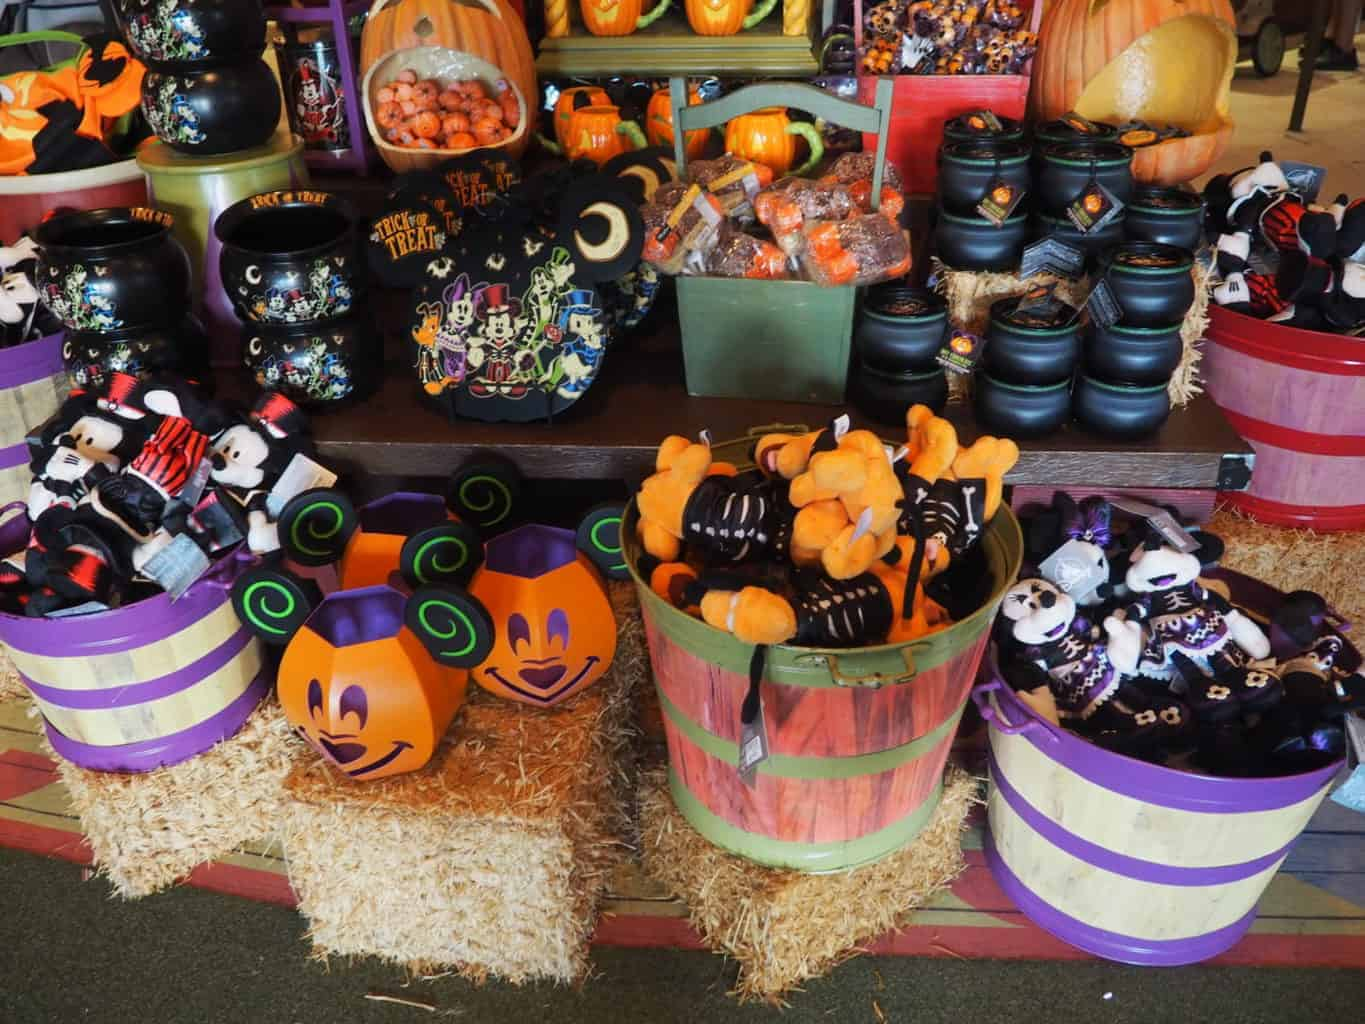 Disney Cruise Line Halloween Merchandise.Halloween At Walt Disney World A Beginners Guide Polka Dots And